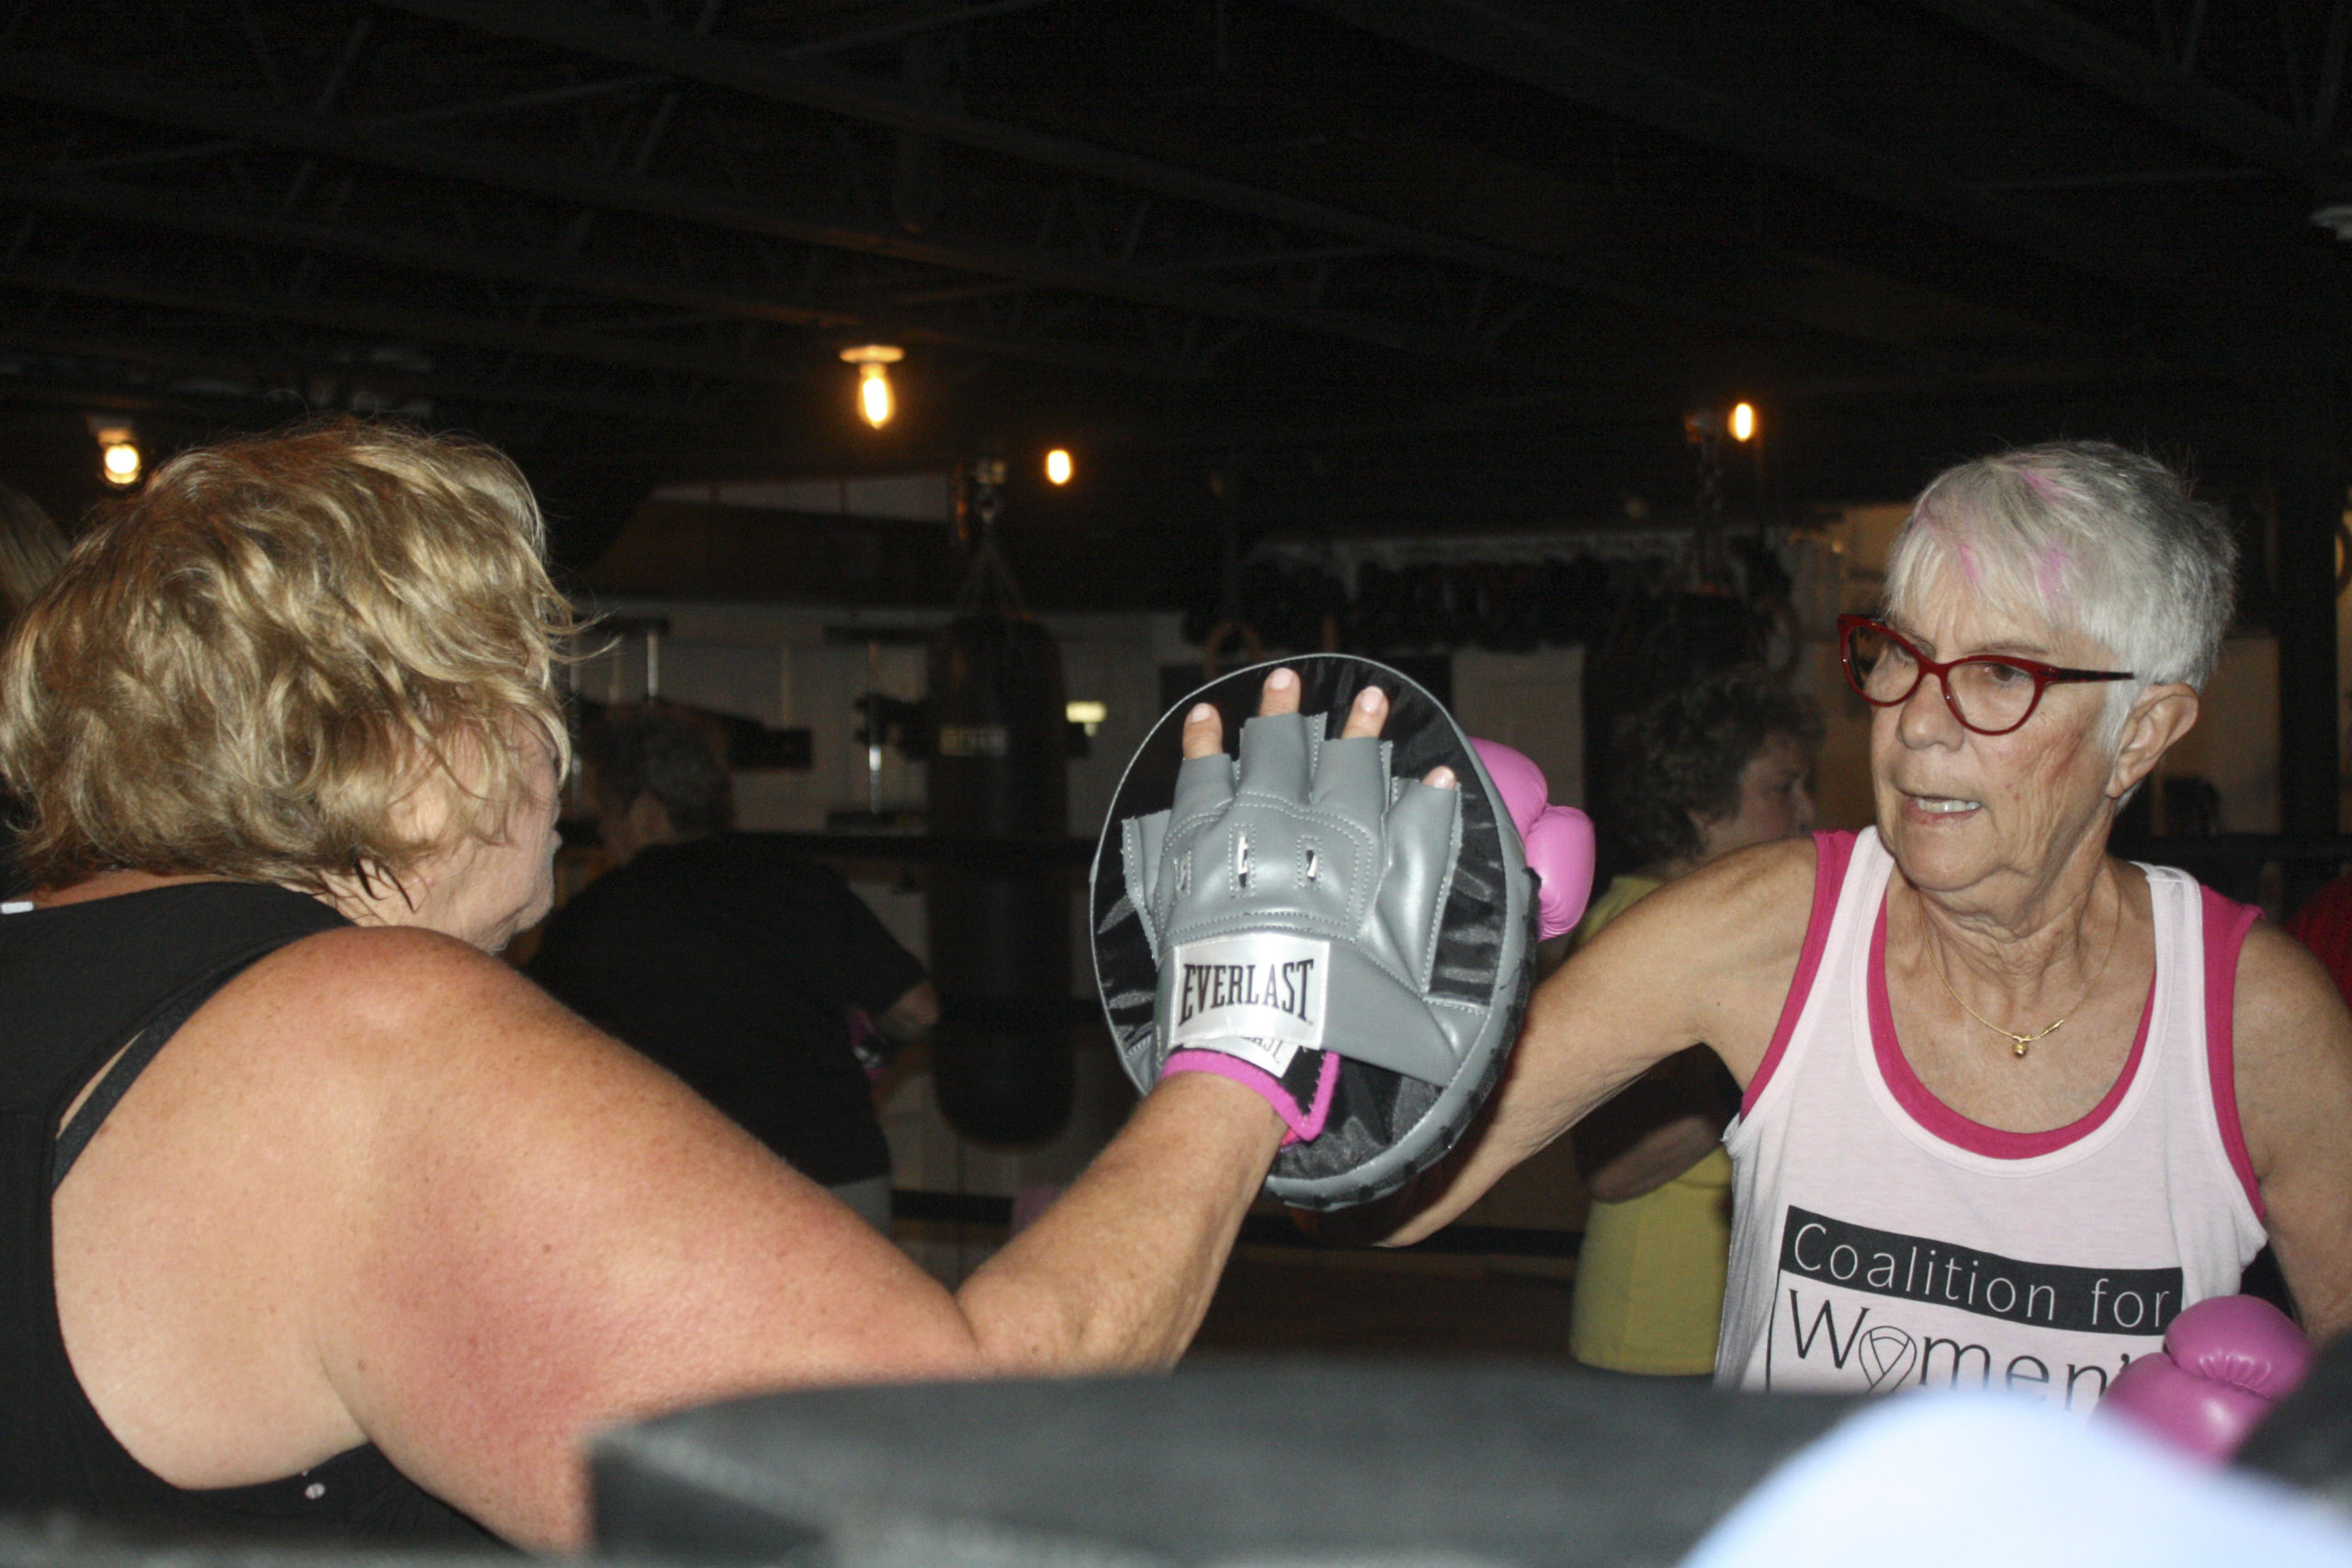 Fight Mode, founder Susie Roden, left, in the ring with Vicki Durand. CALIN RILEY